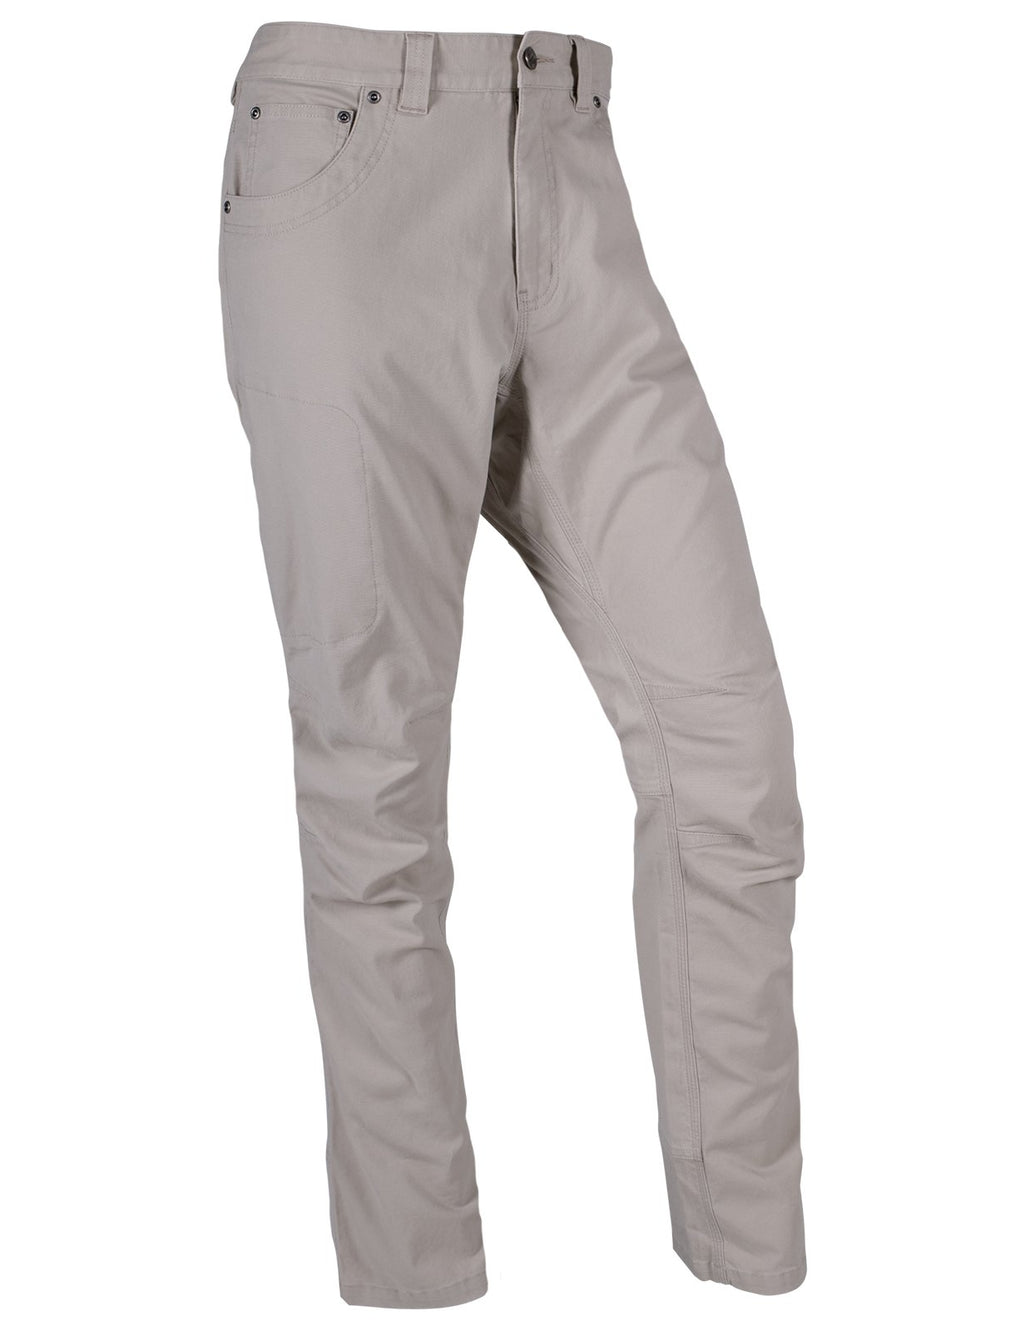 Front view of the product silhouette of the Camber Original Pant in cream Freestone color.